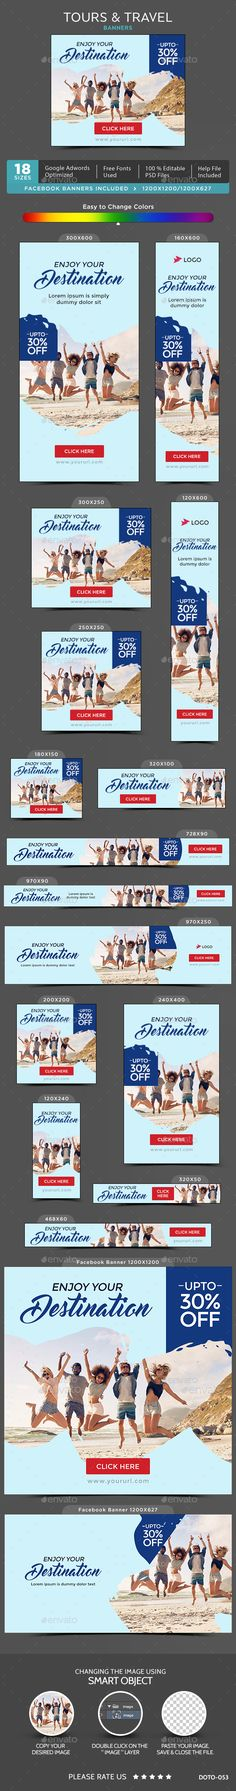 Tours & Travel Banners — Photoshop PSD #flat design #coupon • Available here → https://graphicriver.net/item/tours-travel-banners/20237139?ref=pxcr